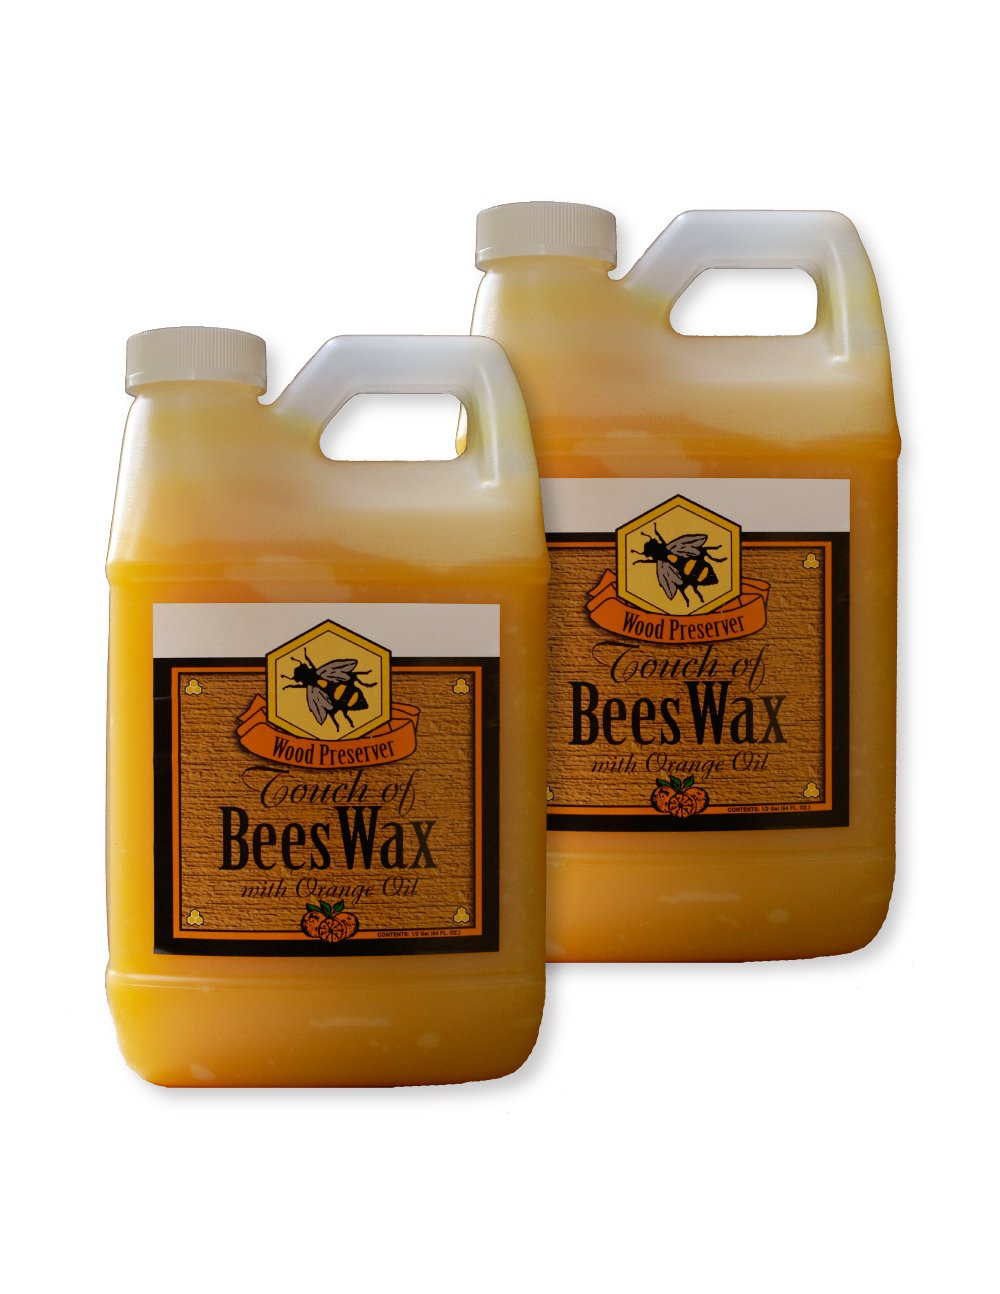 Beeswax, Wood Preserver, Dry Wood, Wax for Wood, Wood Polish, 64oz 1/2 Gallon Set of 2